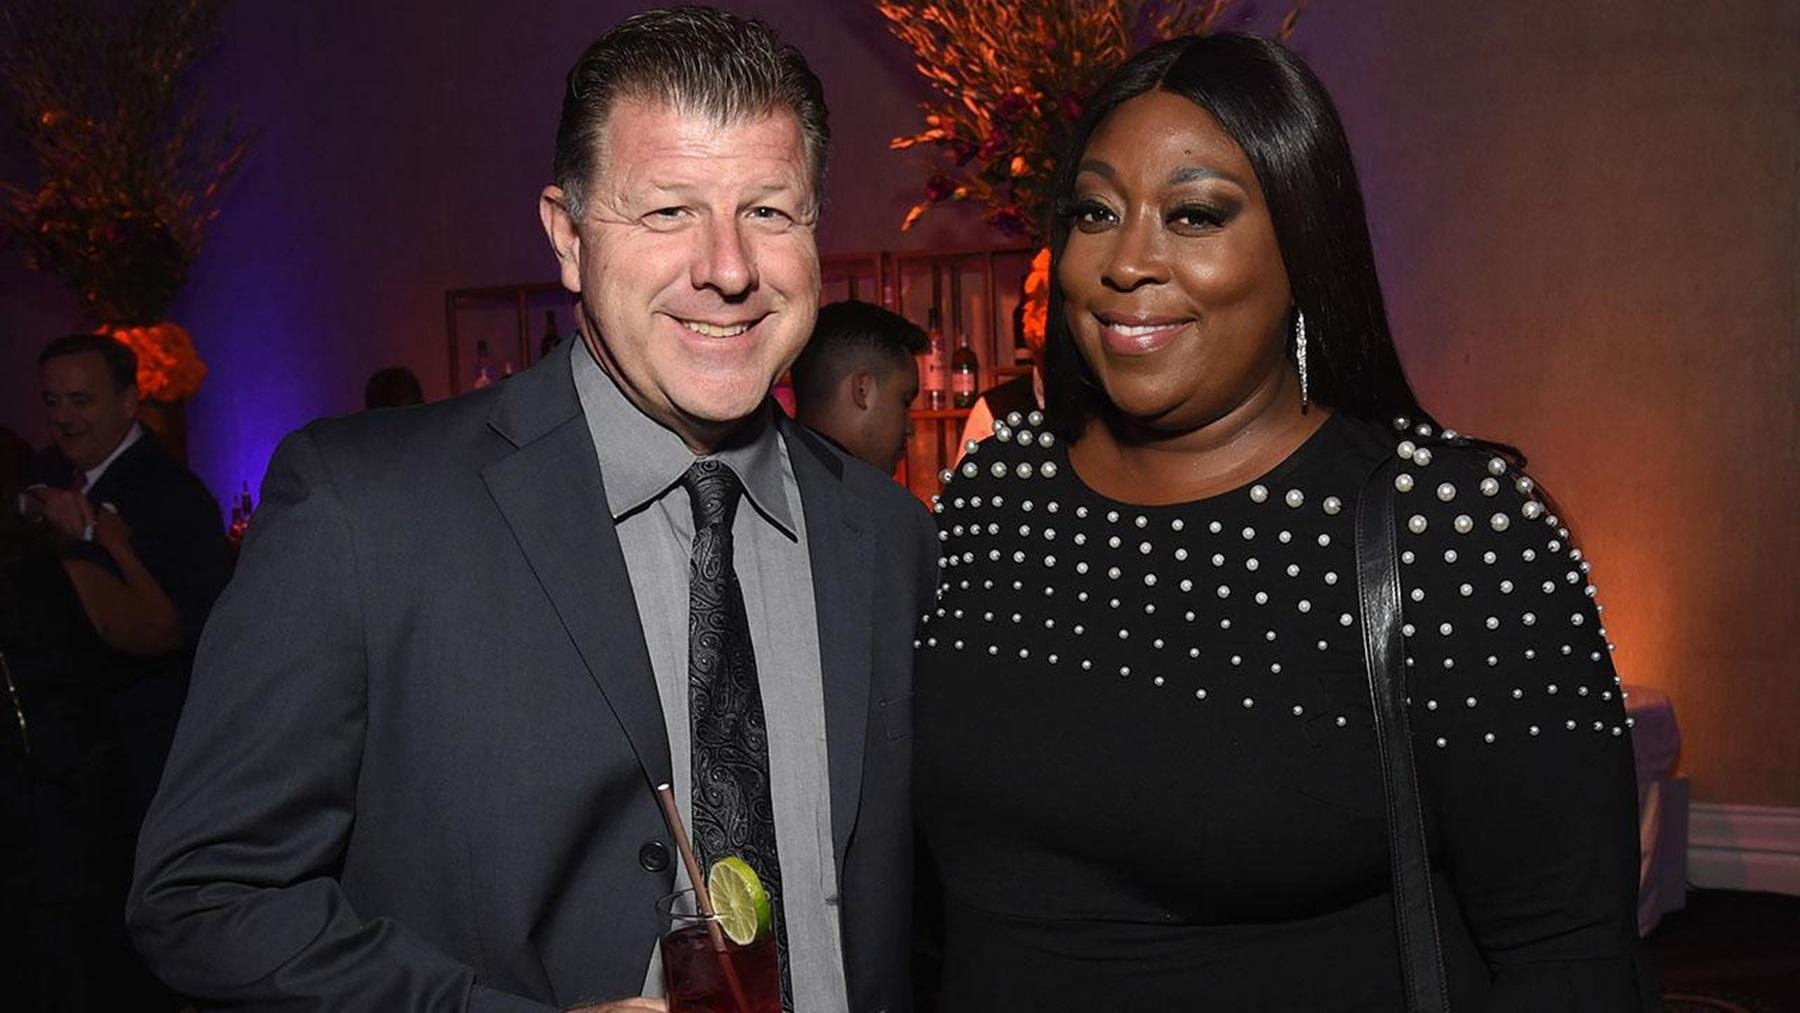 Loni Love Sheds Light On This Rather Odd Situation With BF James Welsh In New Video -- Fans Want Her To Revisit Her Stance